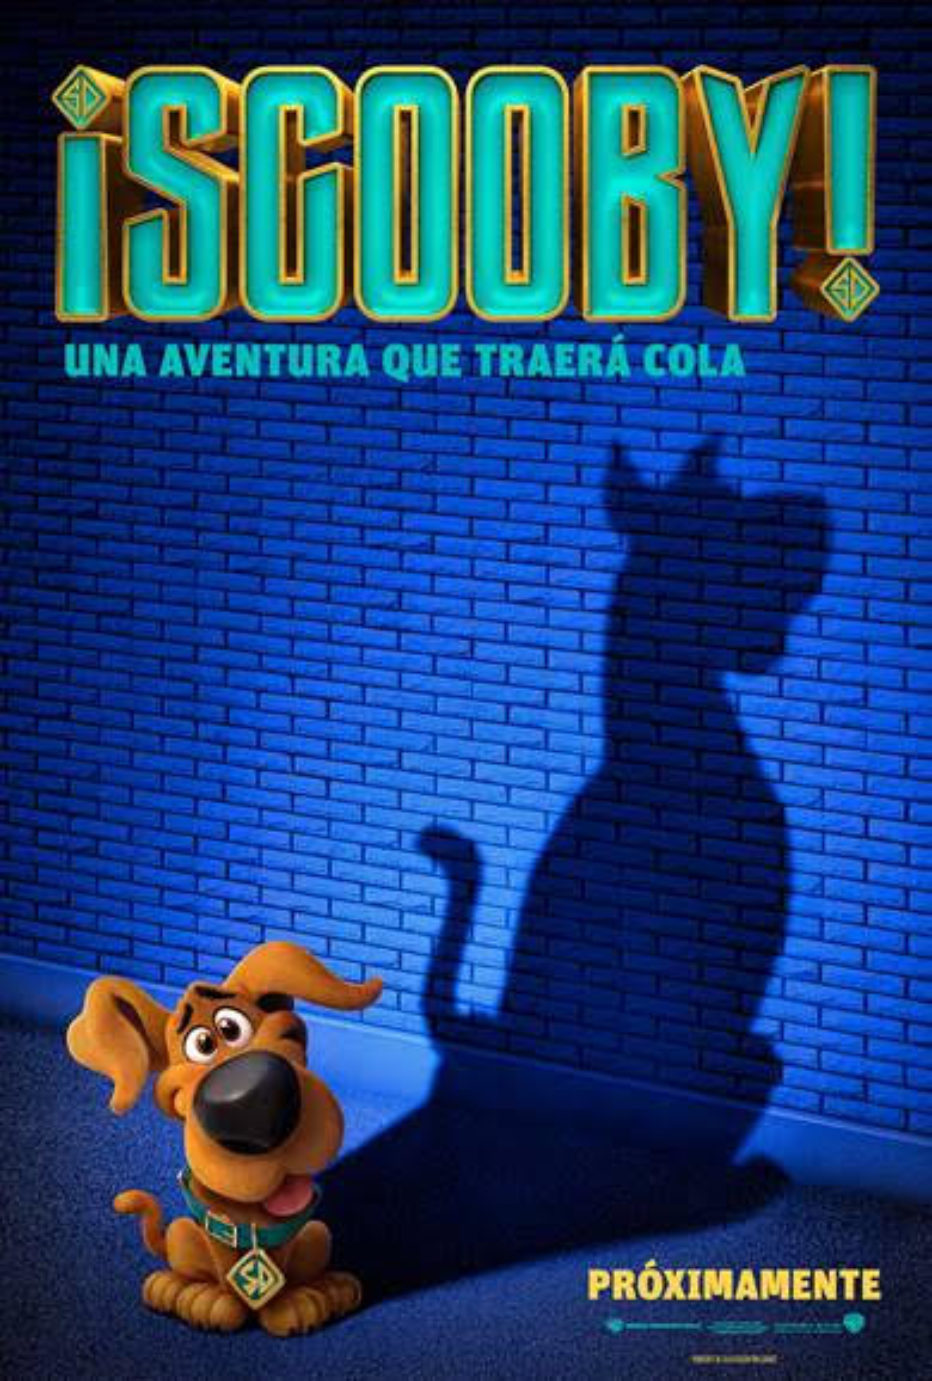 «¡SCOOBY!» – Primer trailer